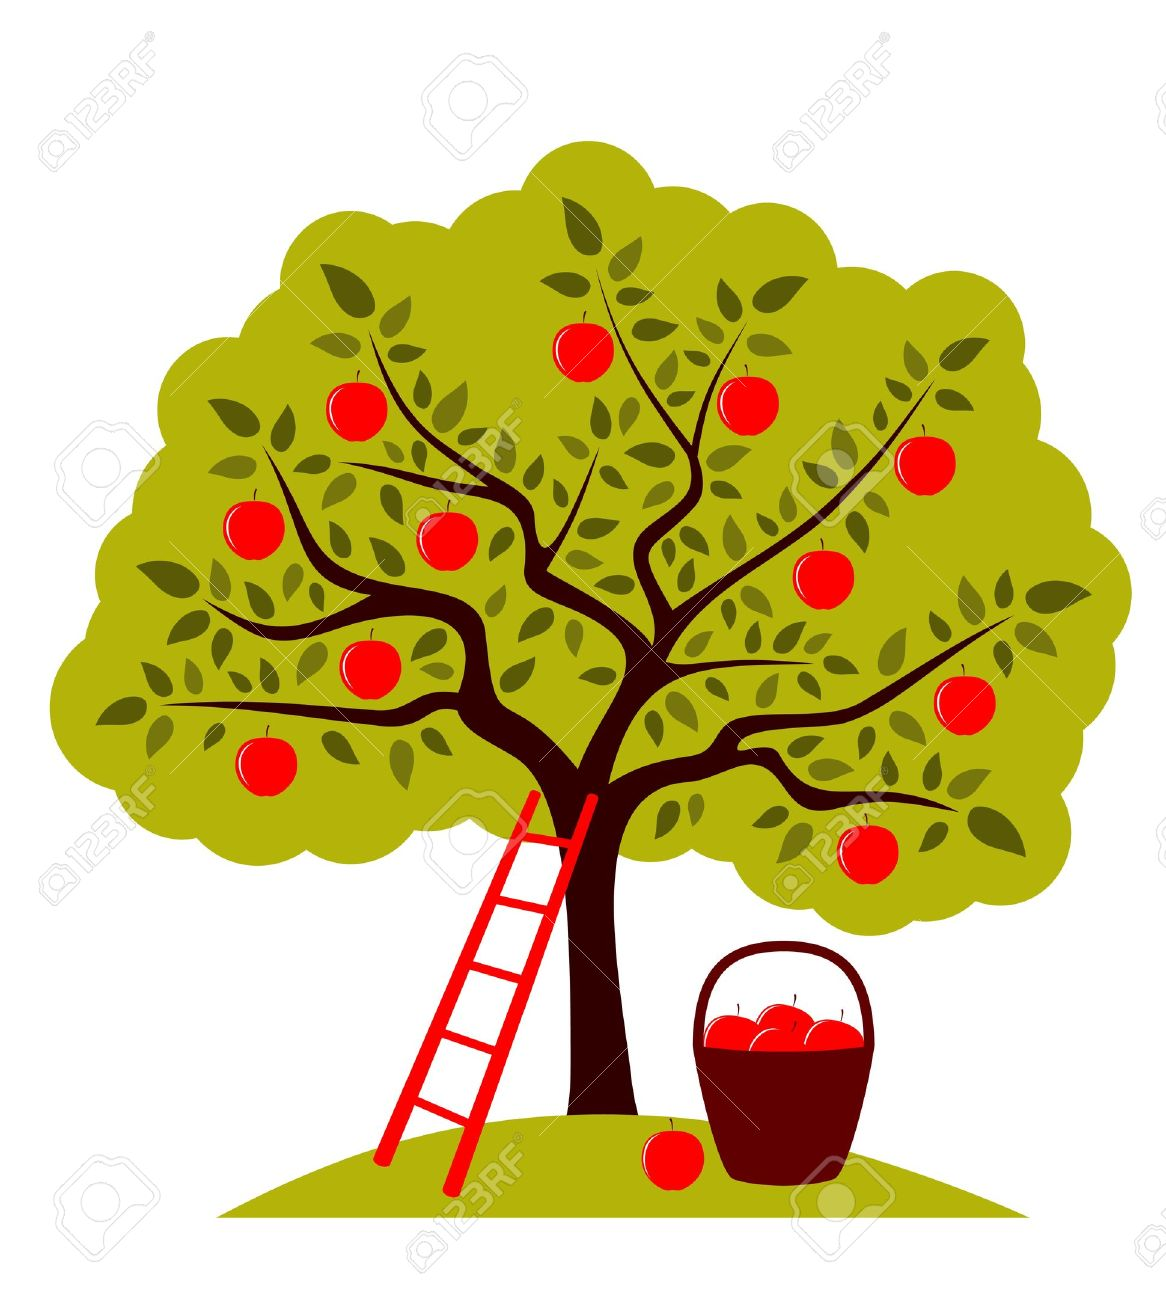 Uncategorized How To Draw A Apple Tree beta757 1 royalty free photos pictures images and stock photography vector apple tree ladder basket of apples